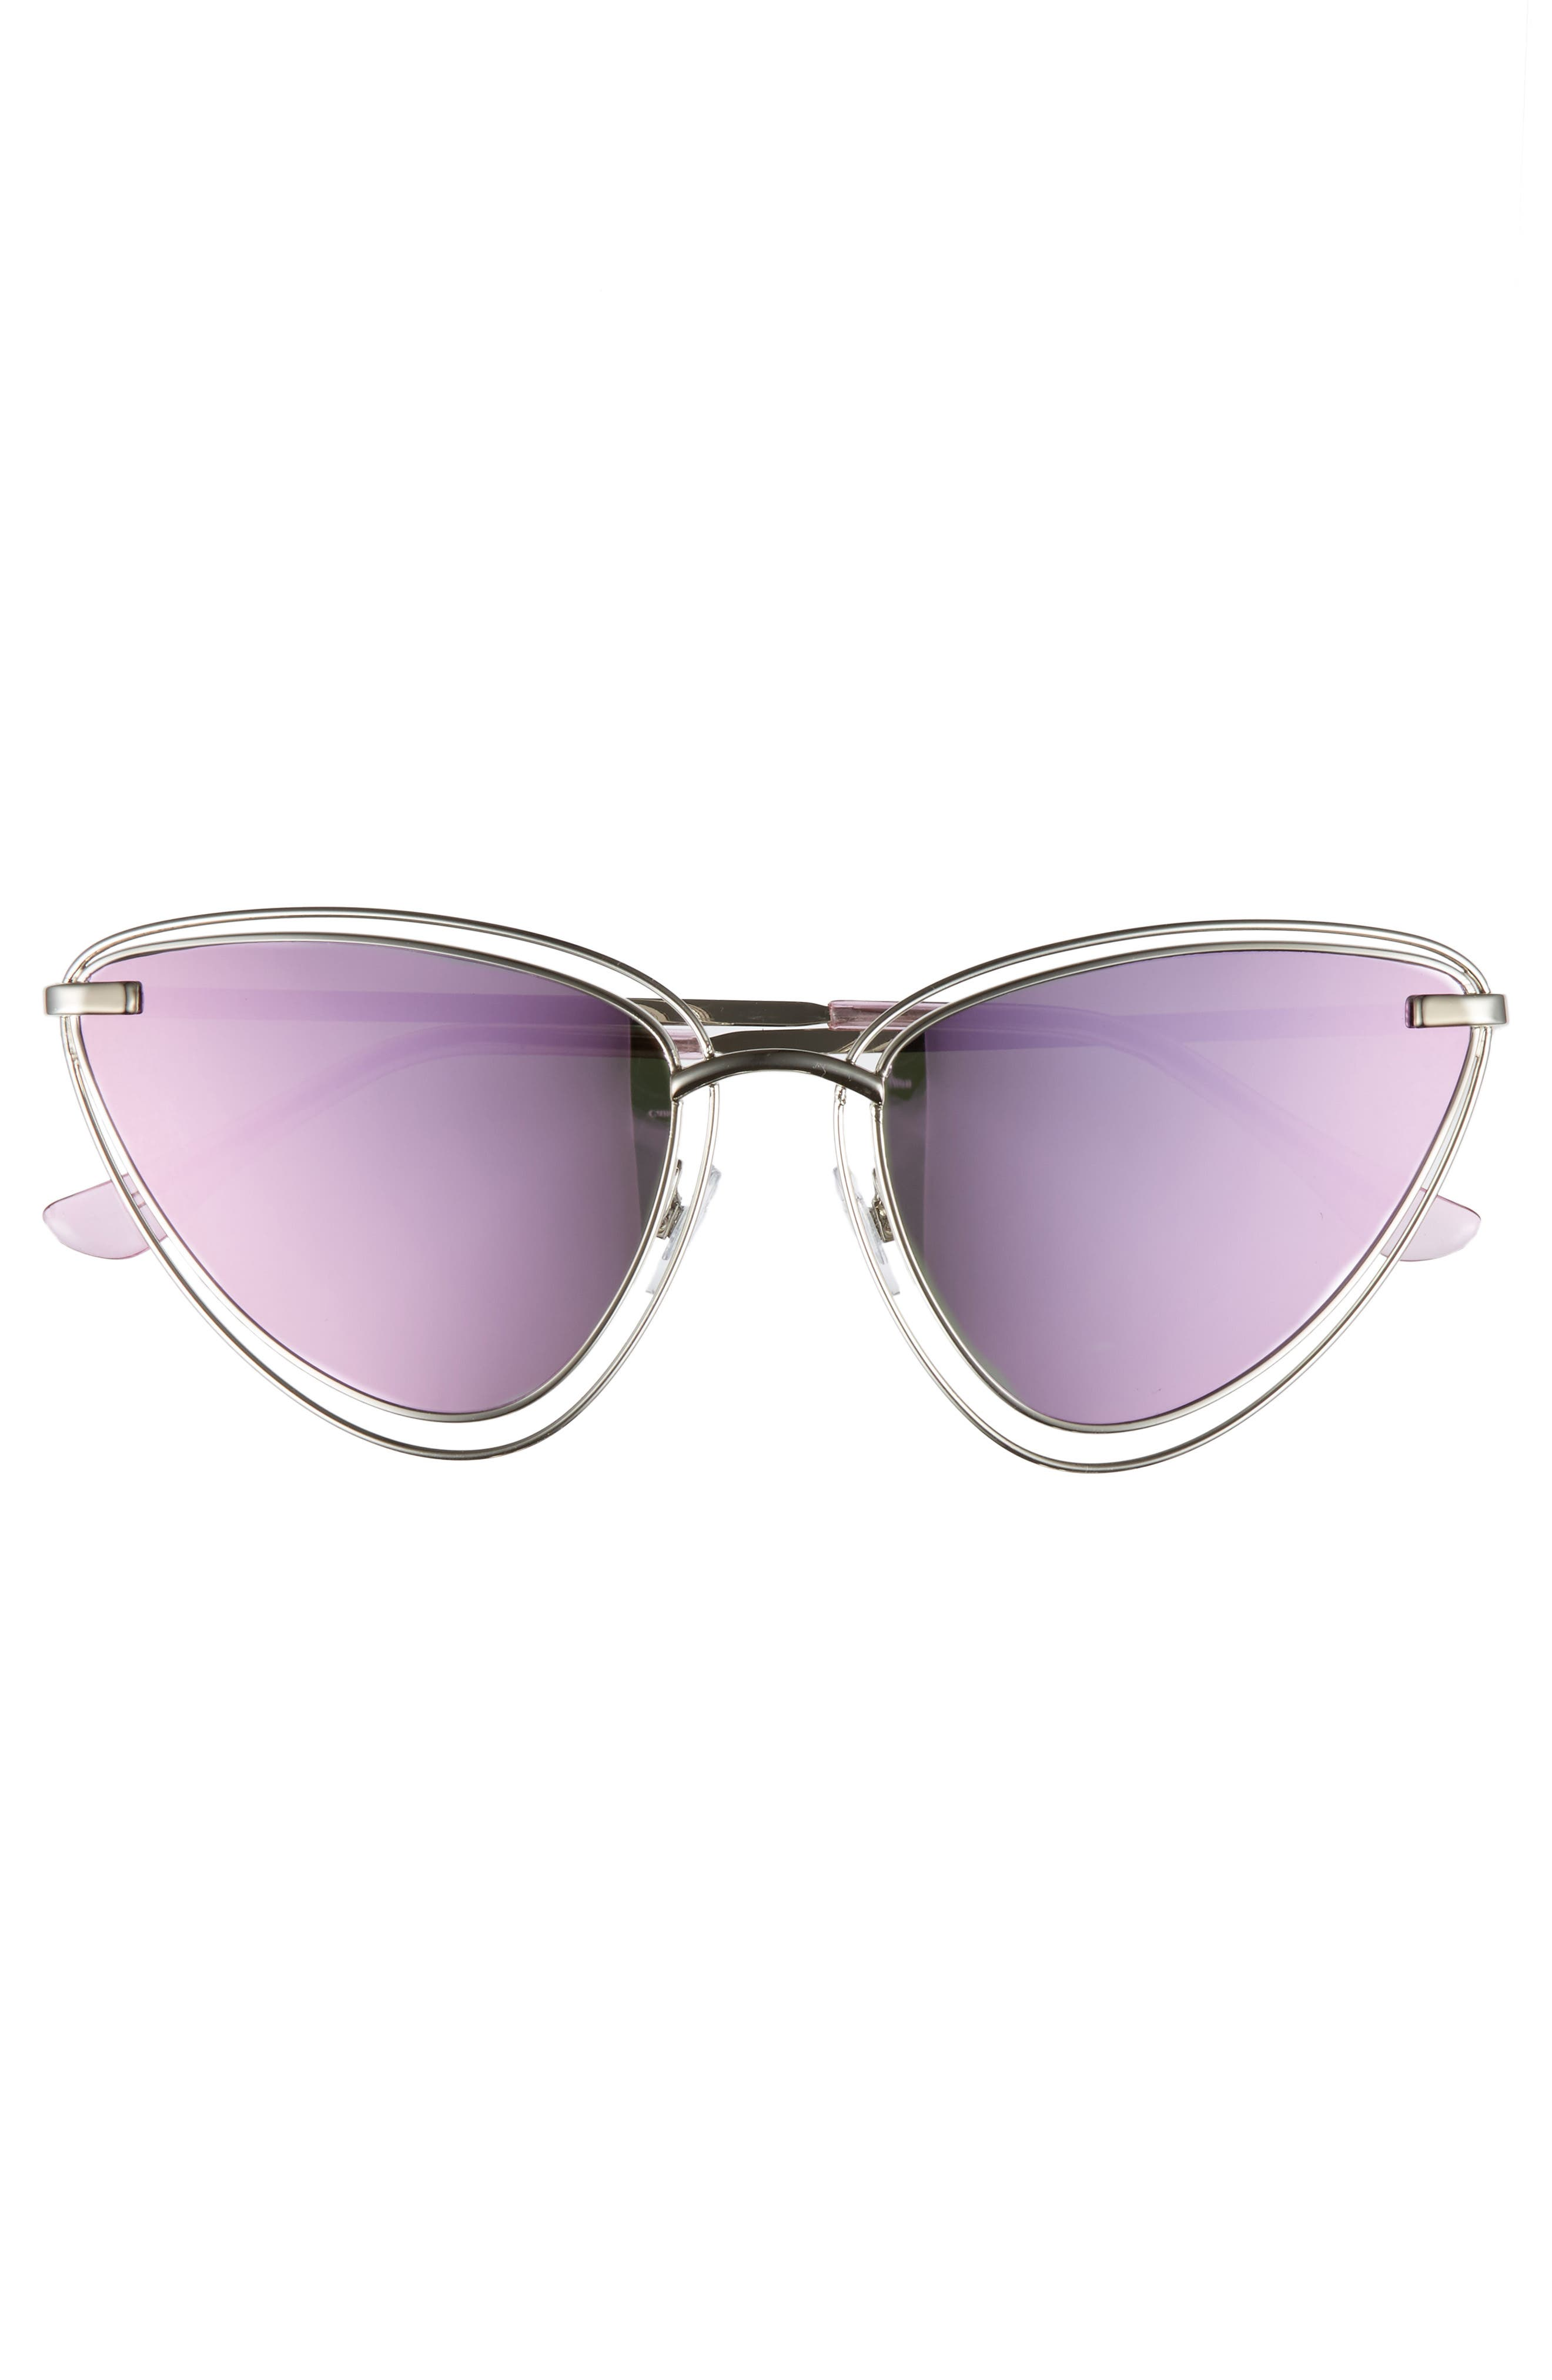 55mm Metal Cat Eye Sunglasses,                             Alternate thumbnail 3, color,                             Silver/ Purple